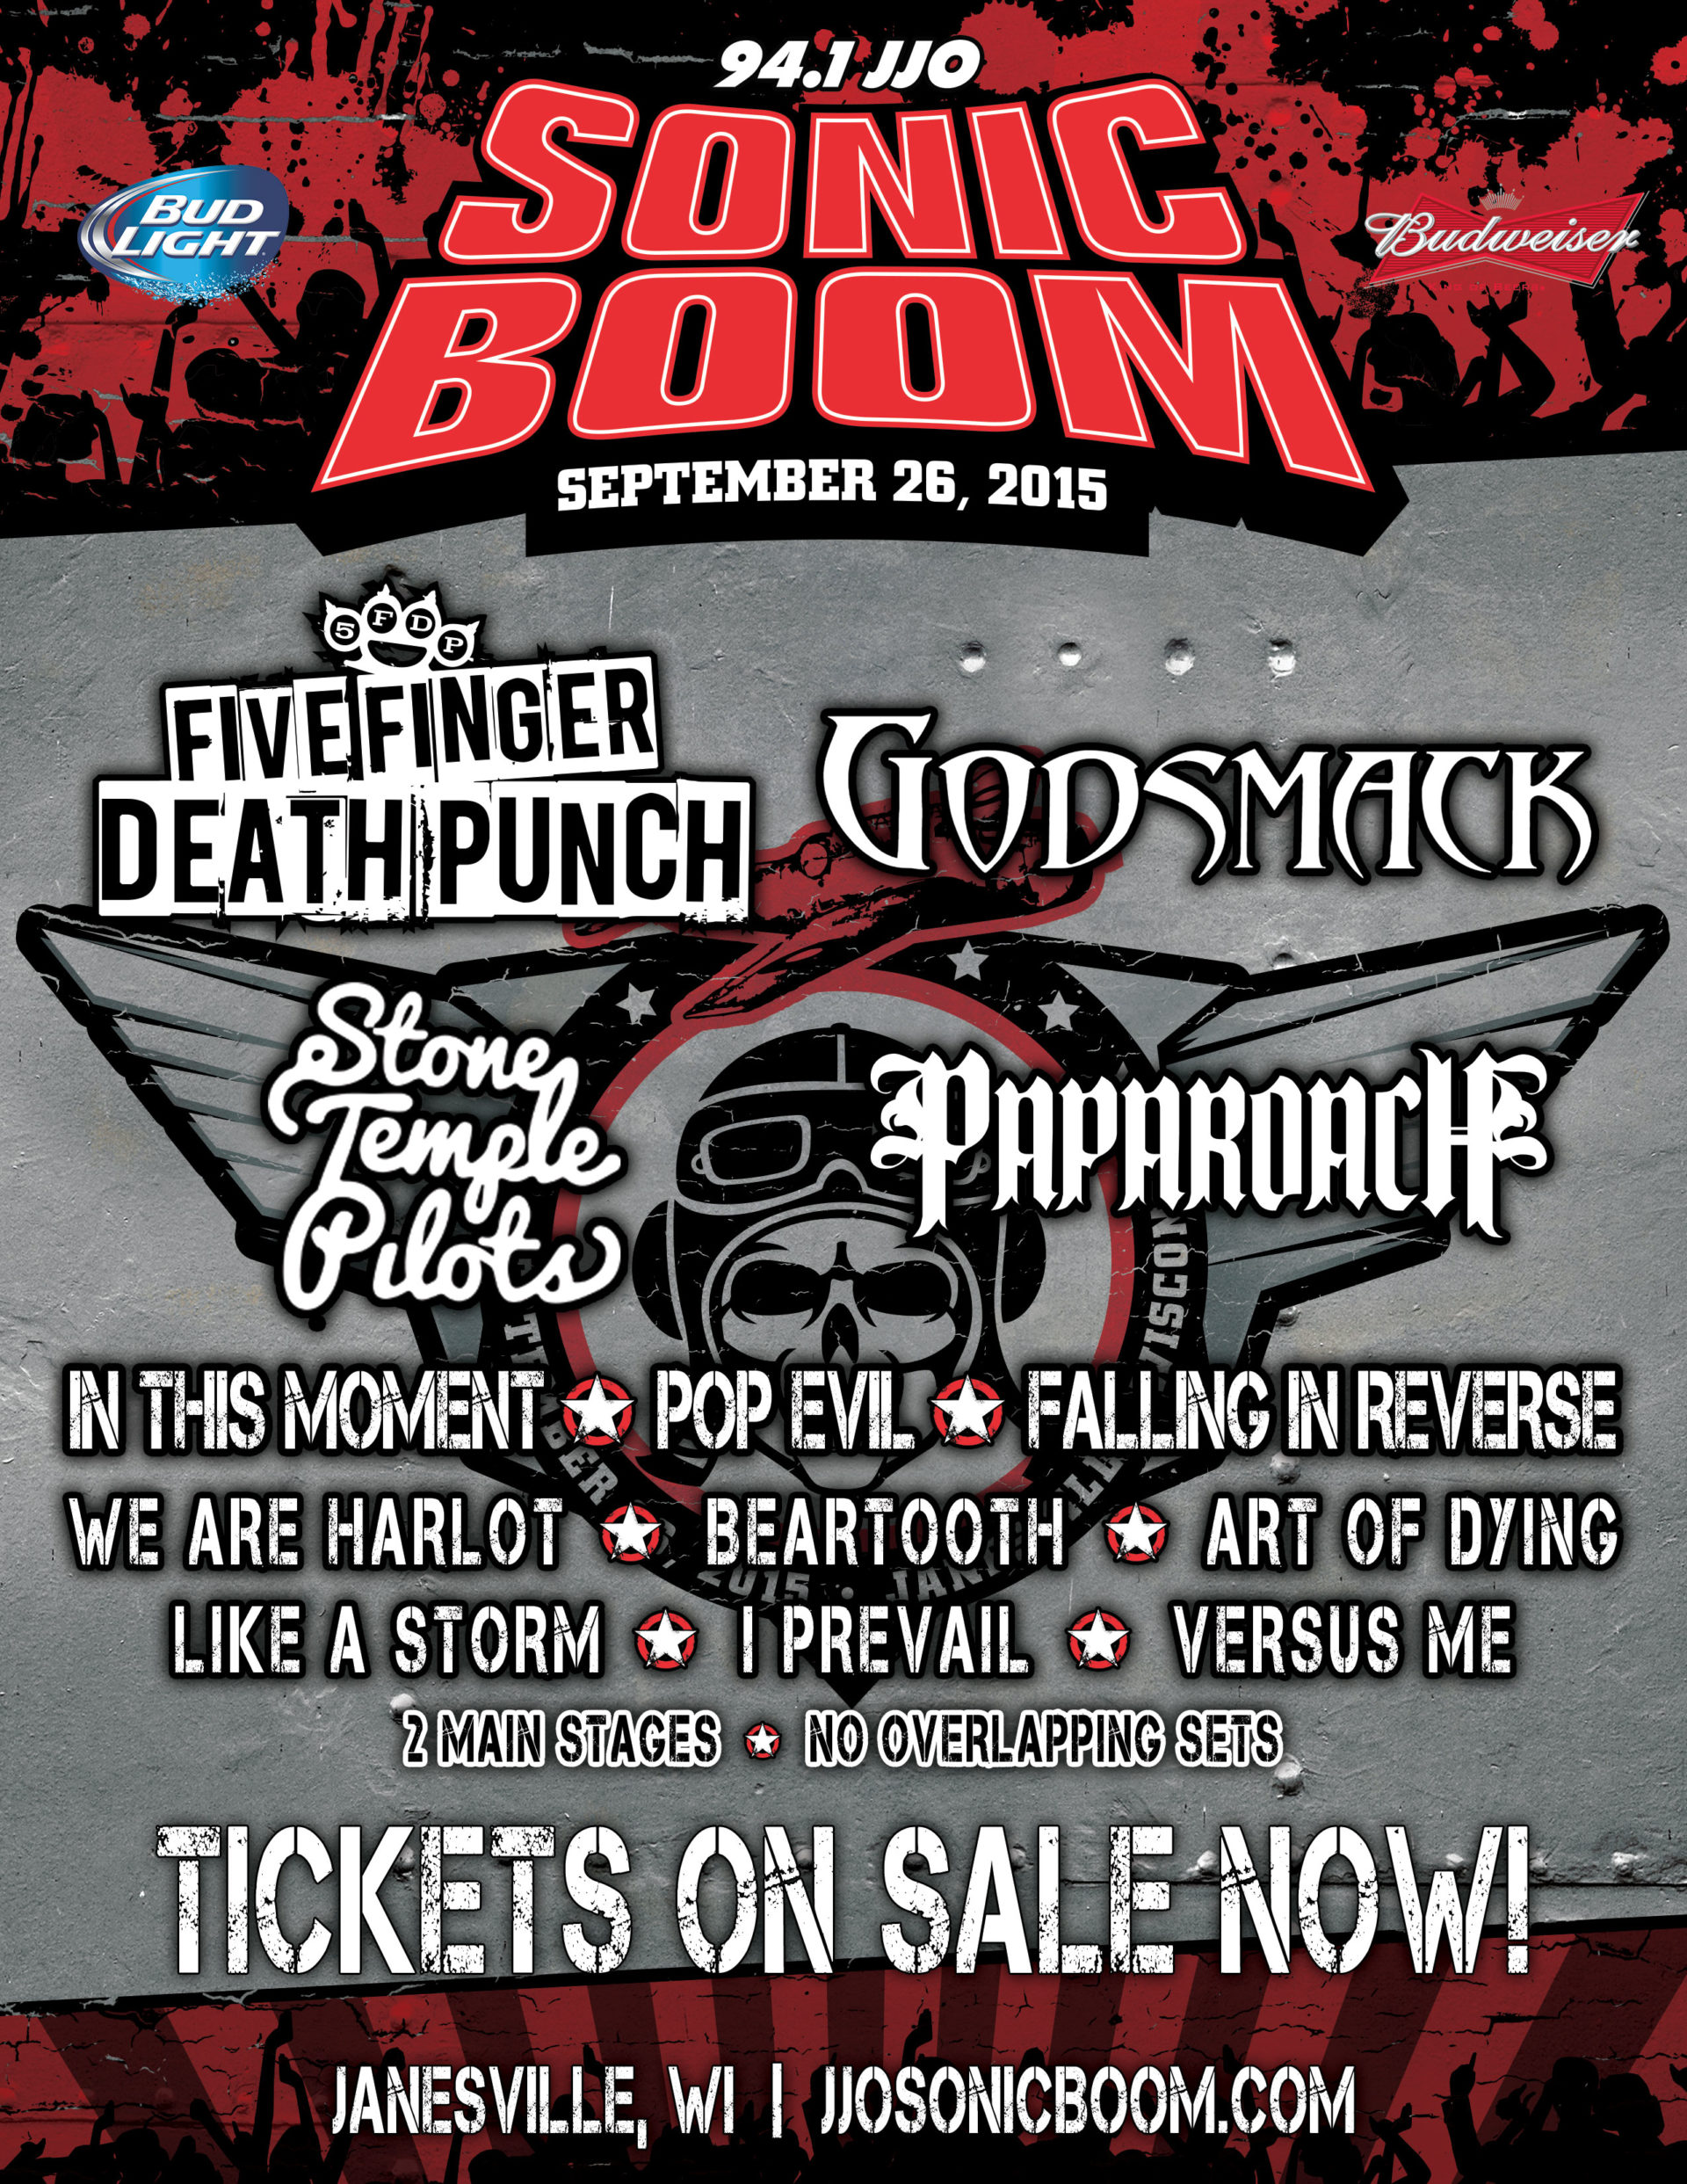 Sonic Boom 2015 Finds A New Home! - SONiC 102.9